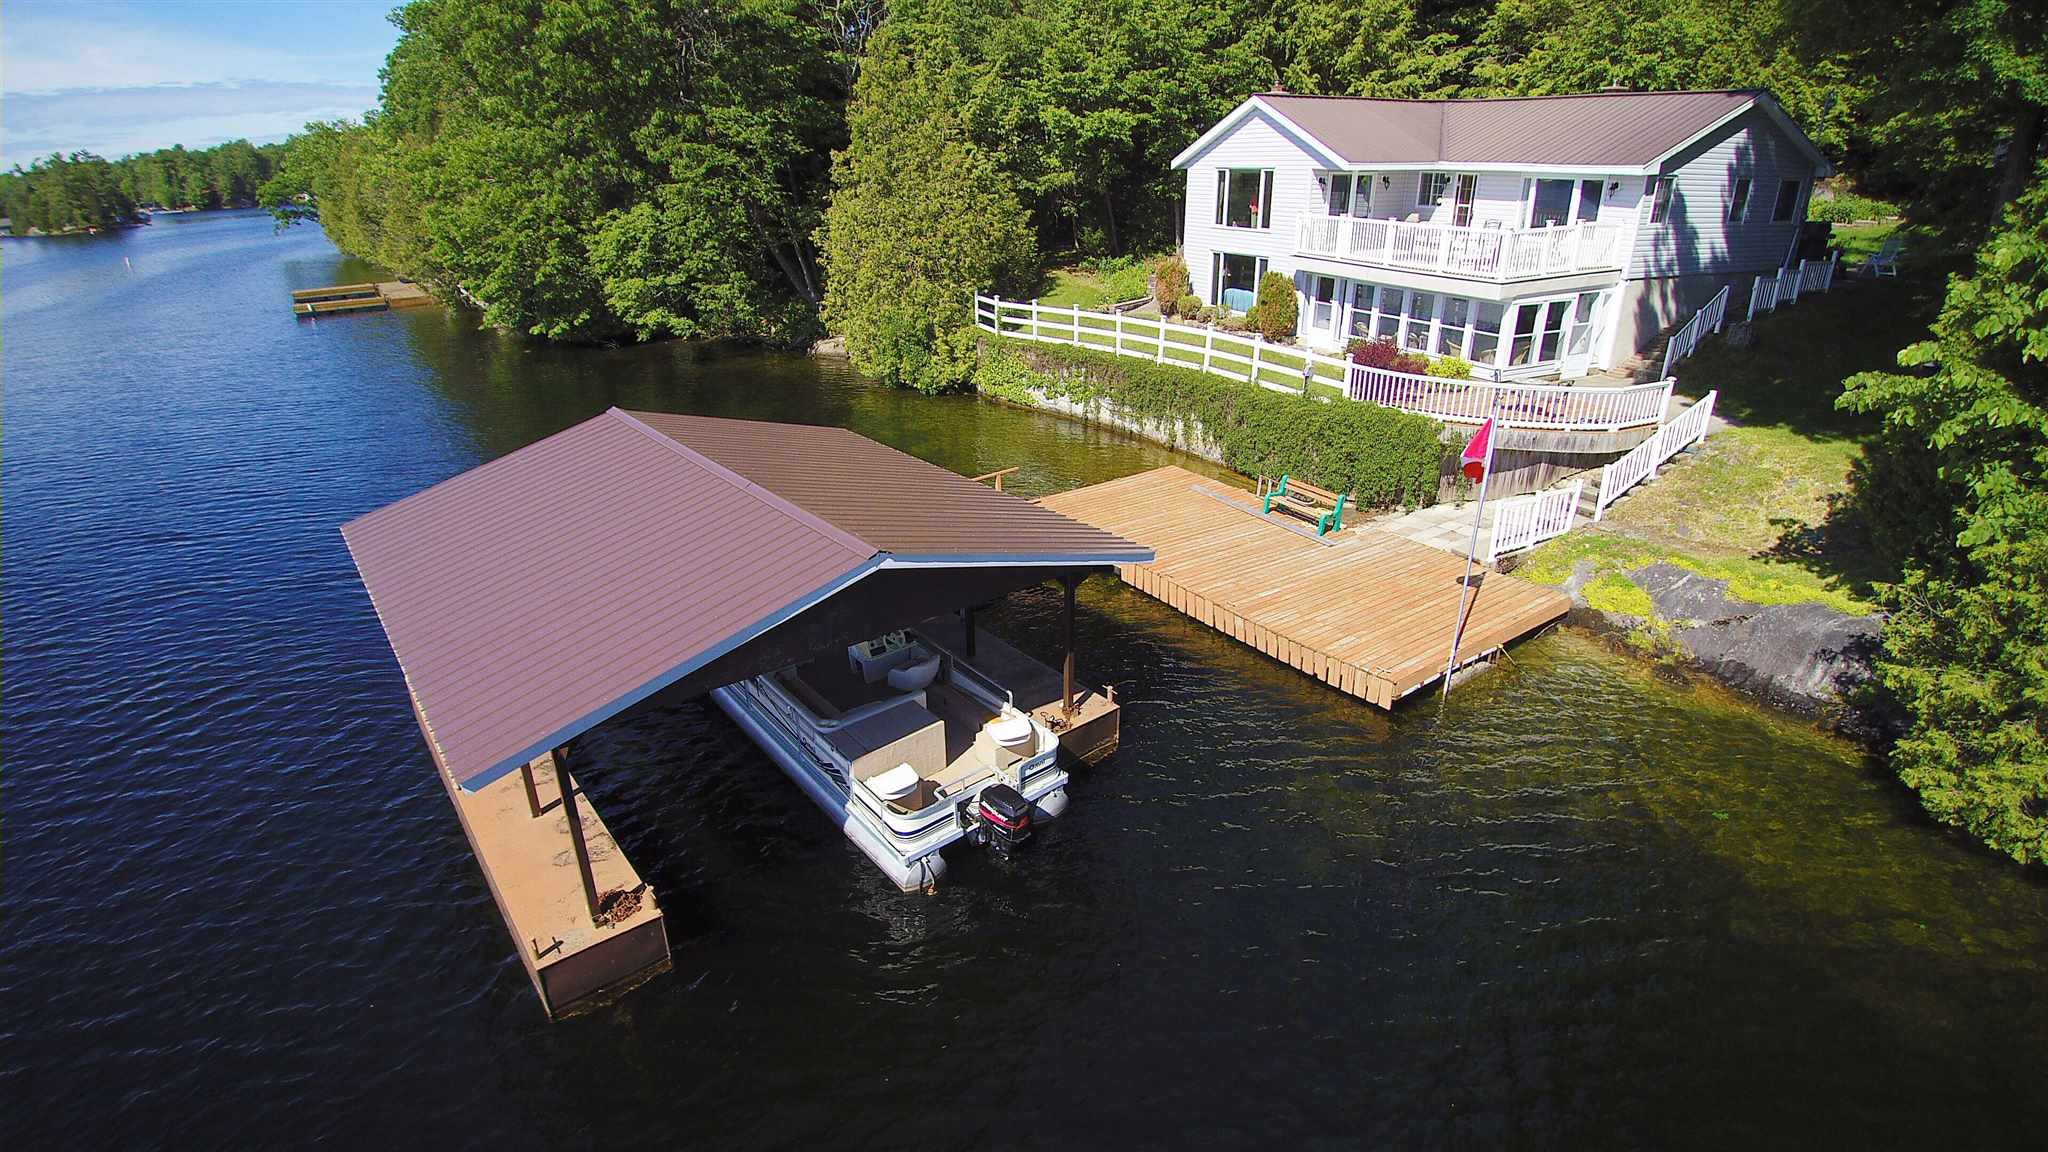 197 Yardarm Lane, Leeds & 1000 Islands Township, Ontario, Canada